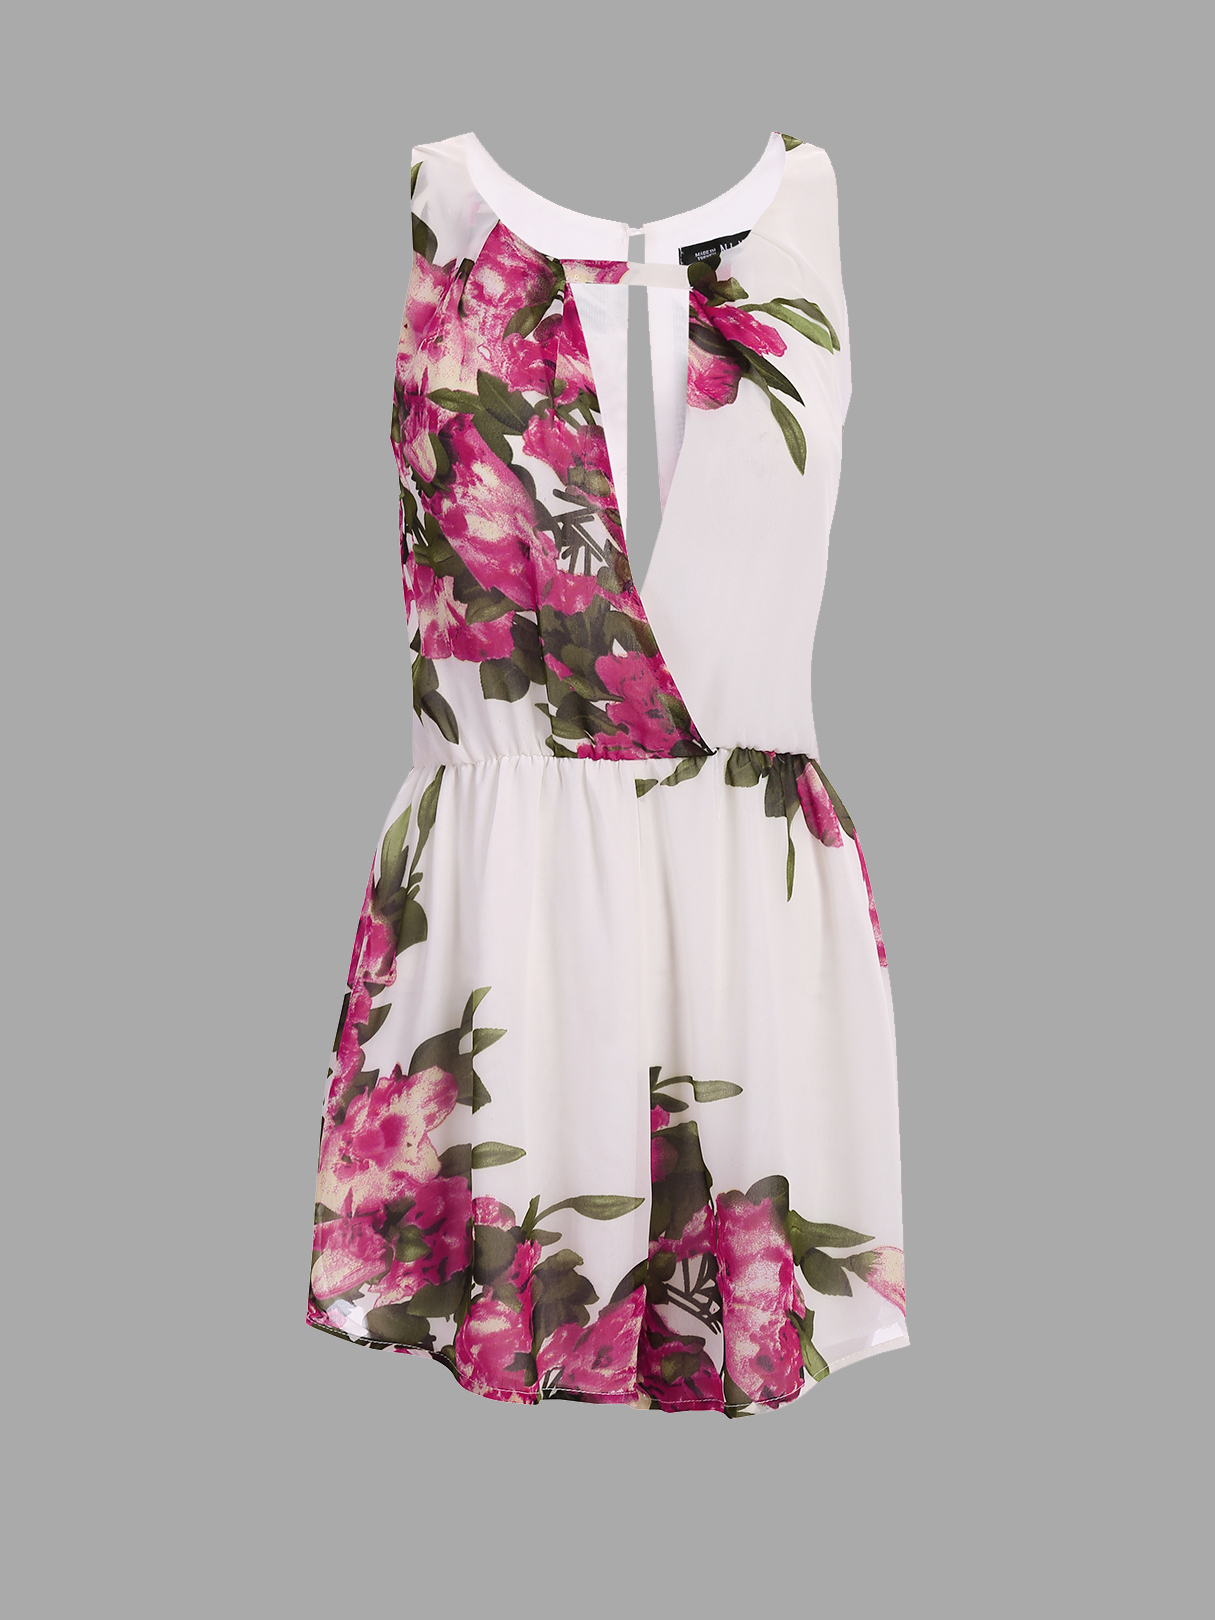 Semi Sheer Floral Print Sleeveless Elastic Waist Playsuit